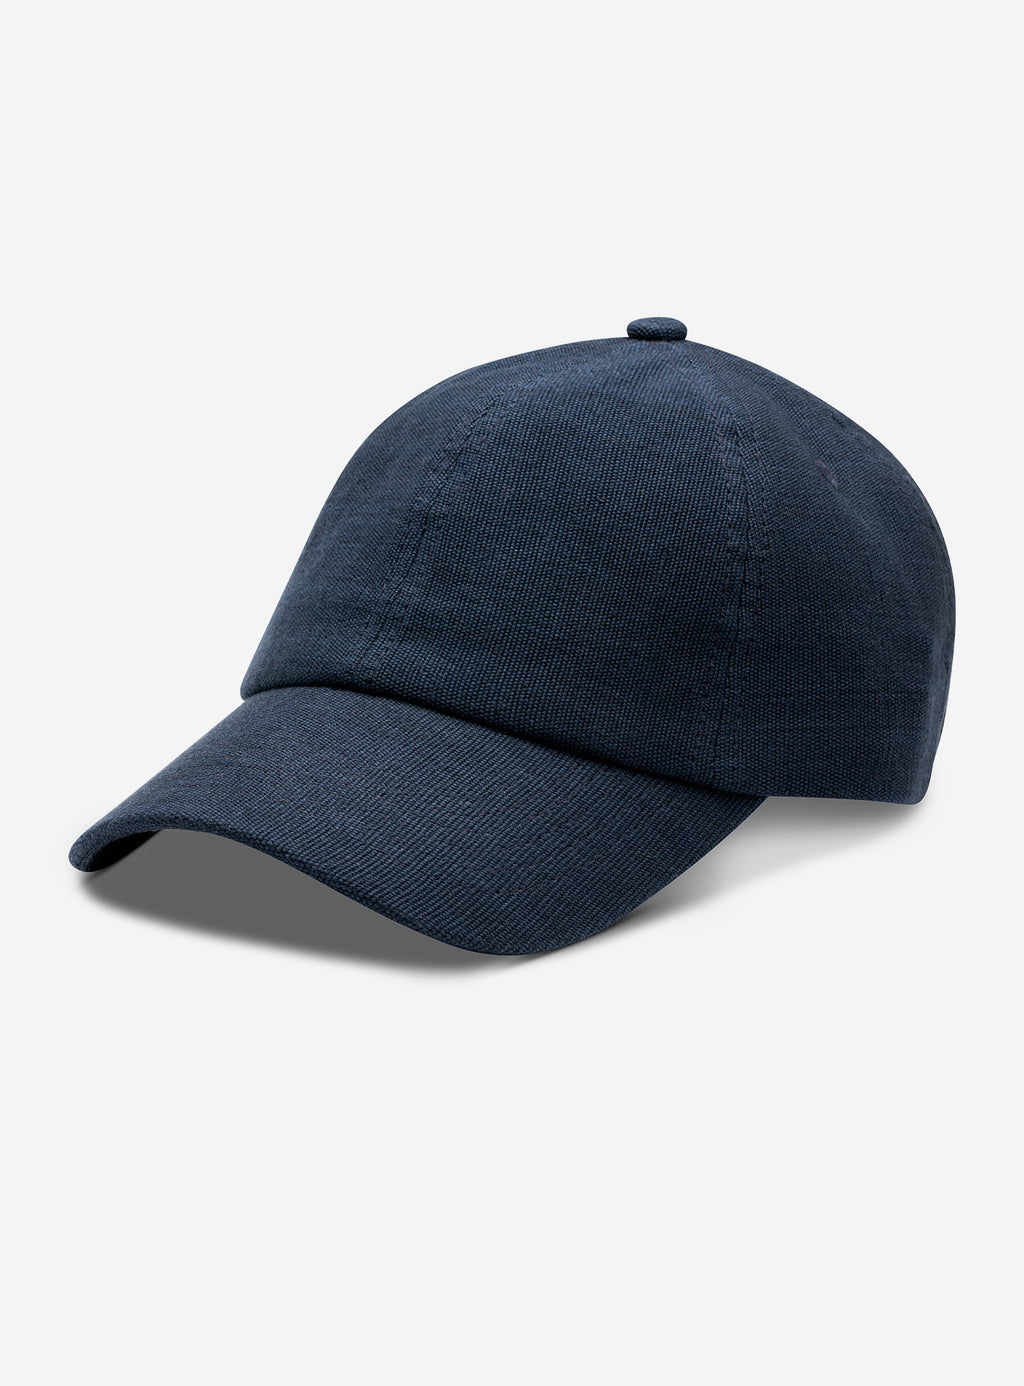 Stiksen 105 Canvas Dark Blue Minimalist